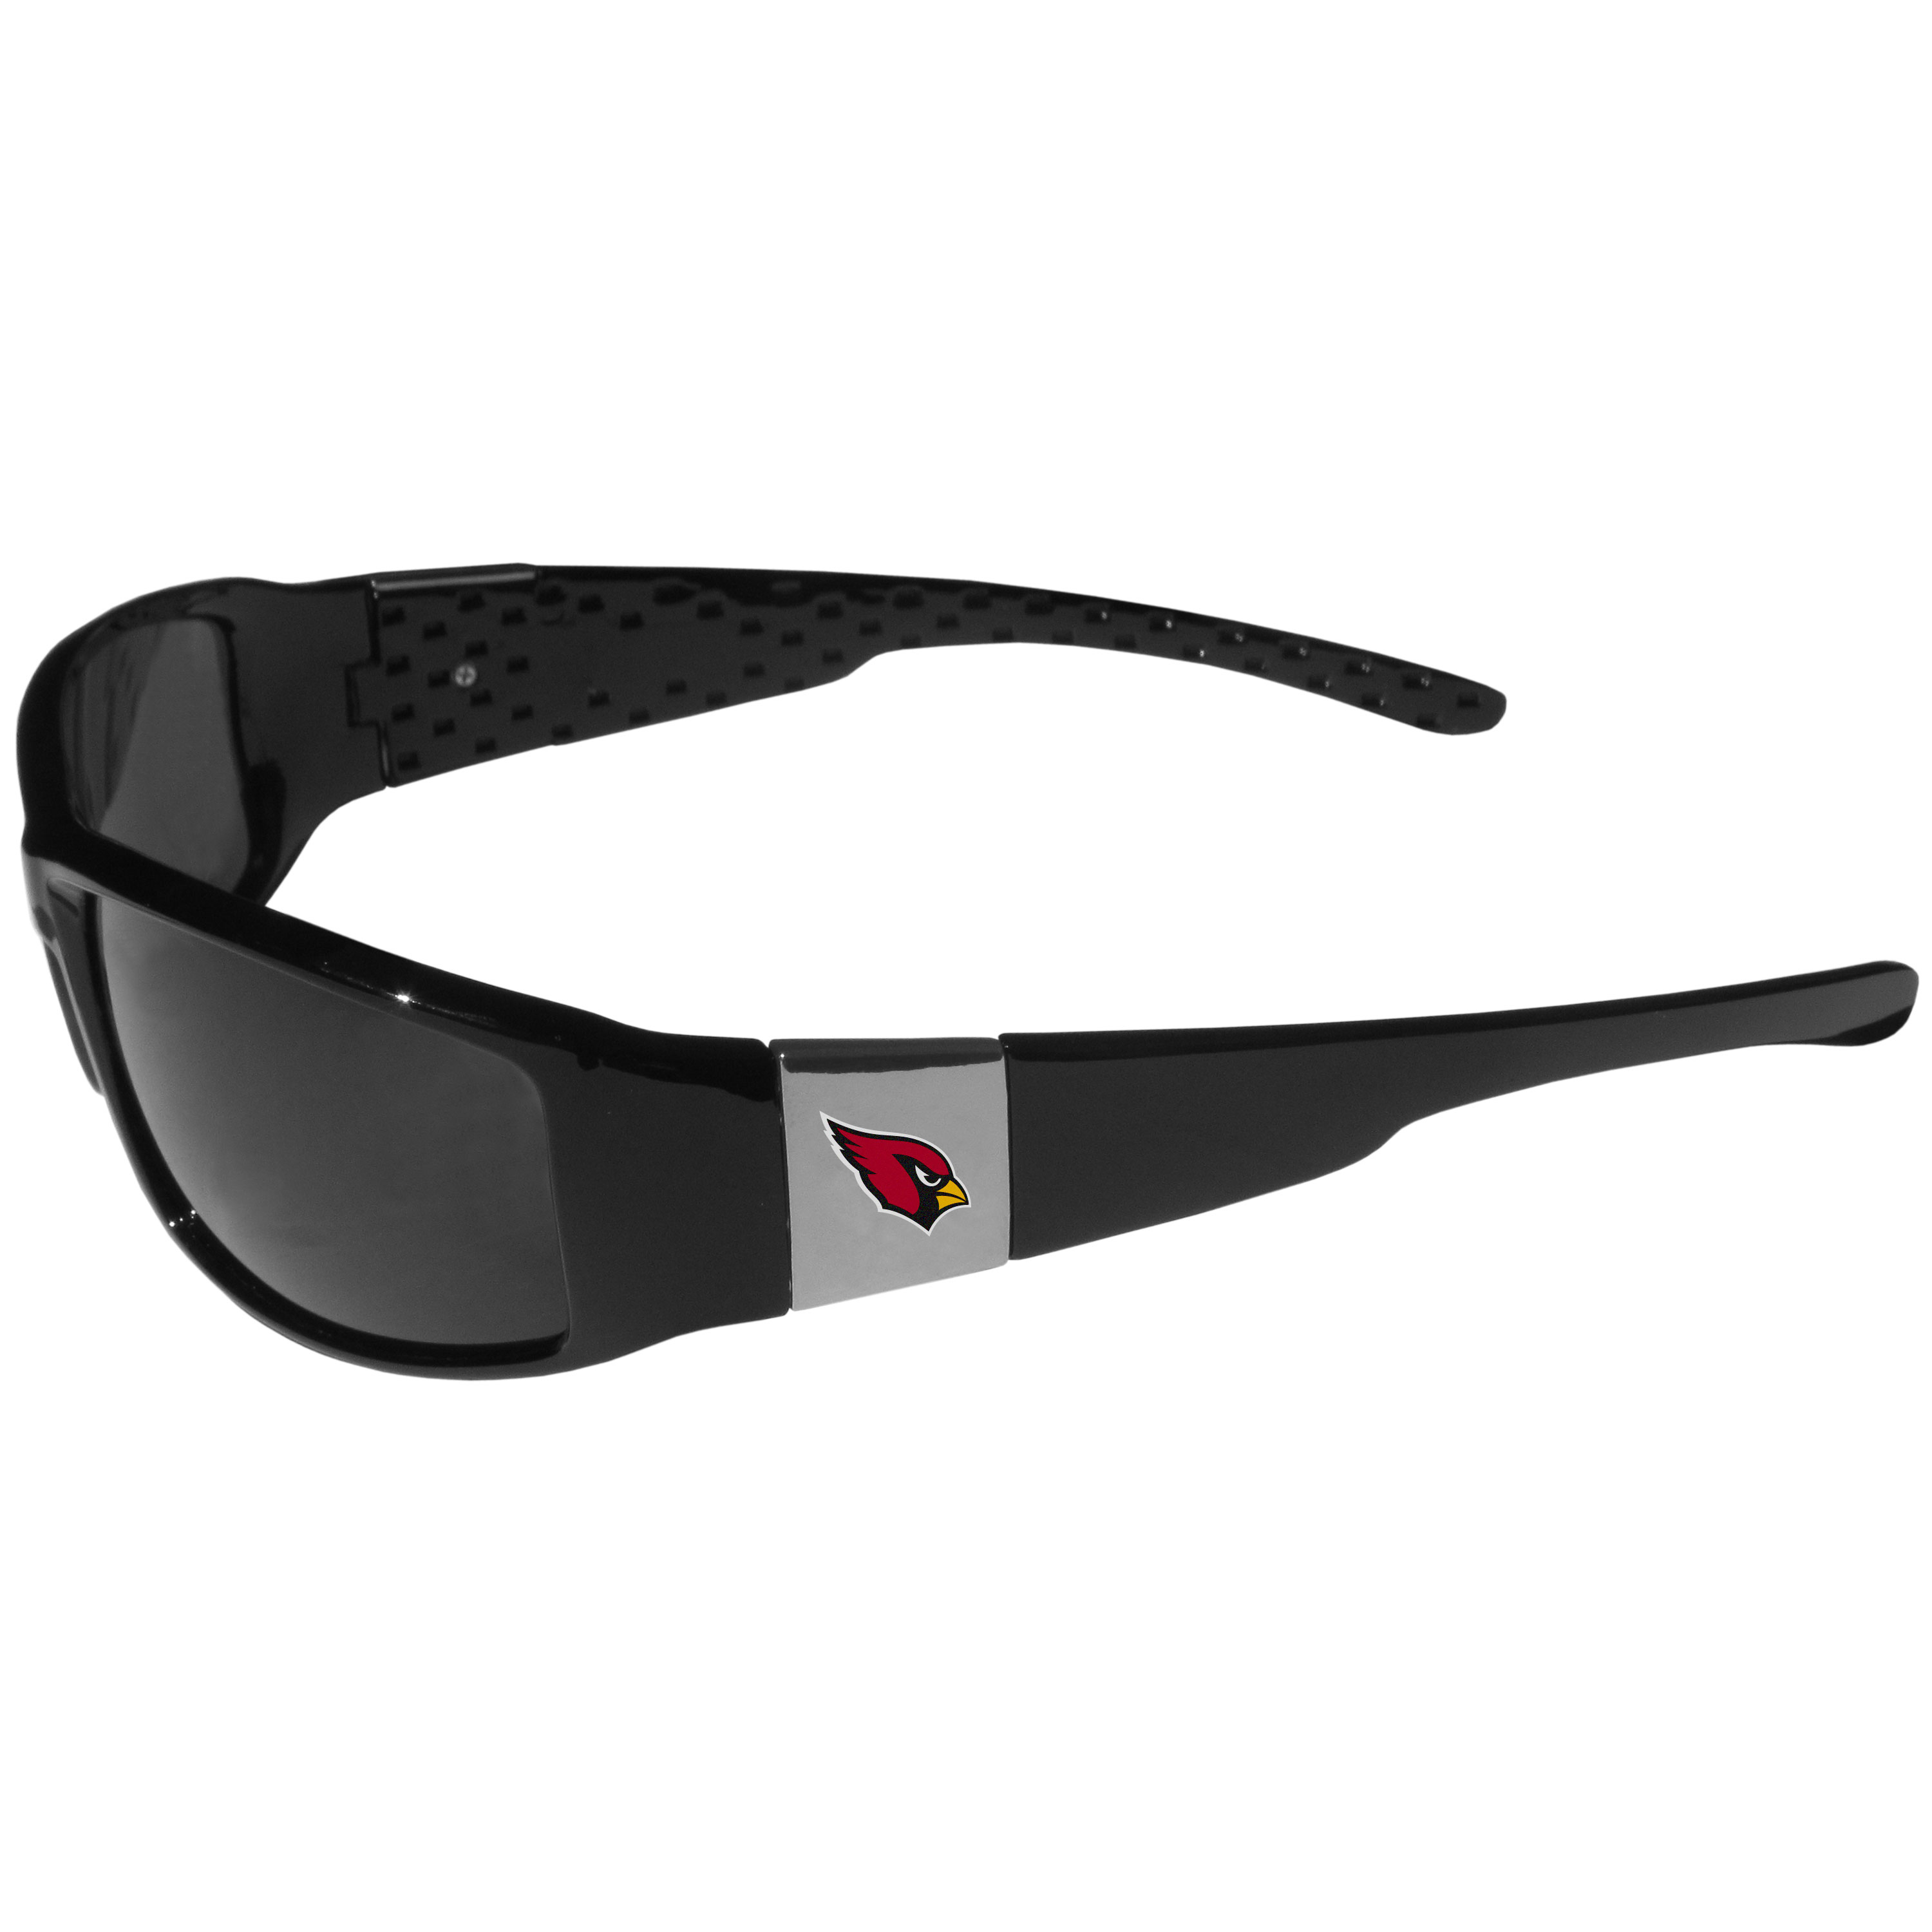 Arizona Cardinals Chrome Wrap Sunglasses - These designer inspired frames have a sleek look in all black with high-polish chrome Arizona Cardinals shields on each arm with a printed logo. The shades are perfect for any outdoor activity like; golfing, driving, hiking, fishing or cheering on the team at a tailgating event or at a home game day BBQ with a lens rating of 100% UVA/UVB for maximum UV protection. The high-quality frames are as durable as they are fashionable and with their classic look they are the perfect fan accessory that can be worn everyday for every occasion.